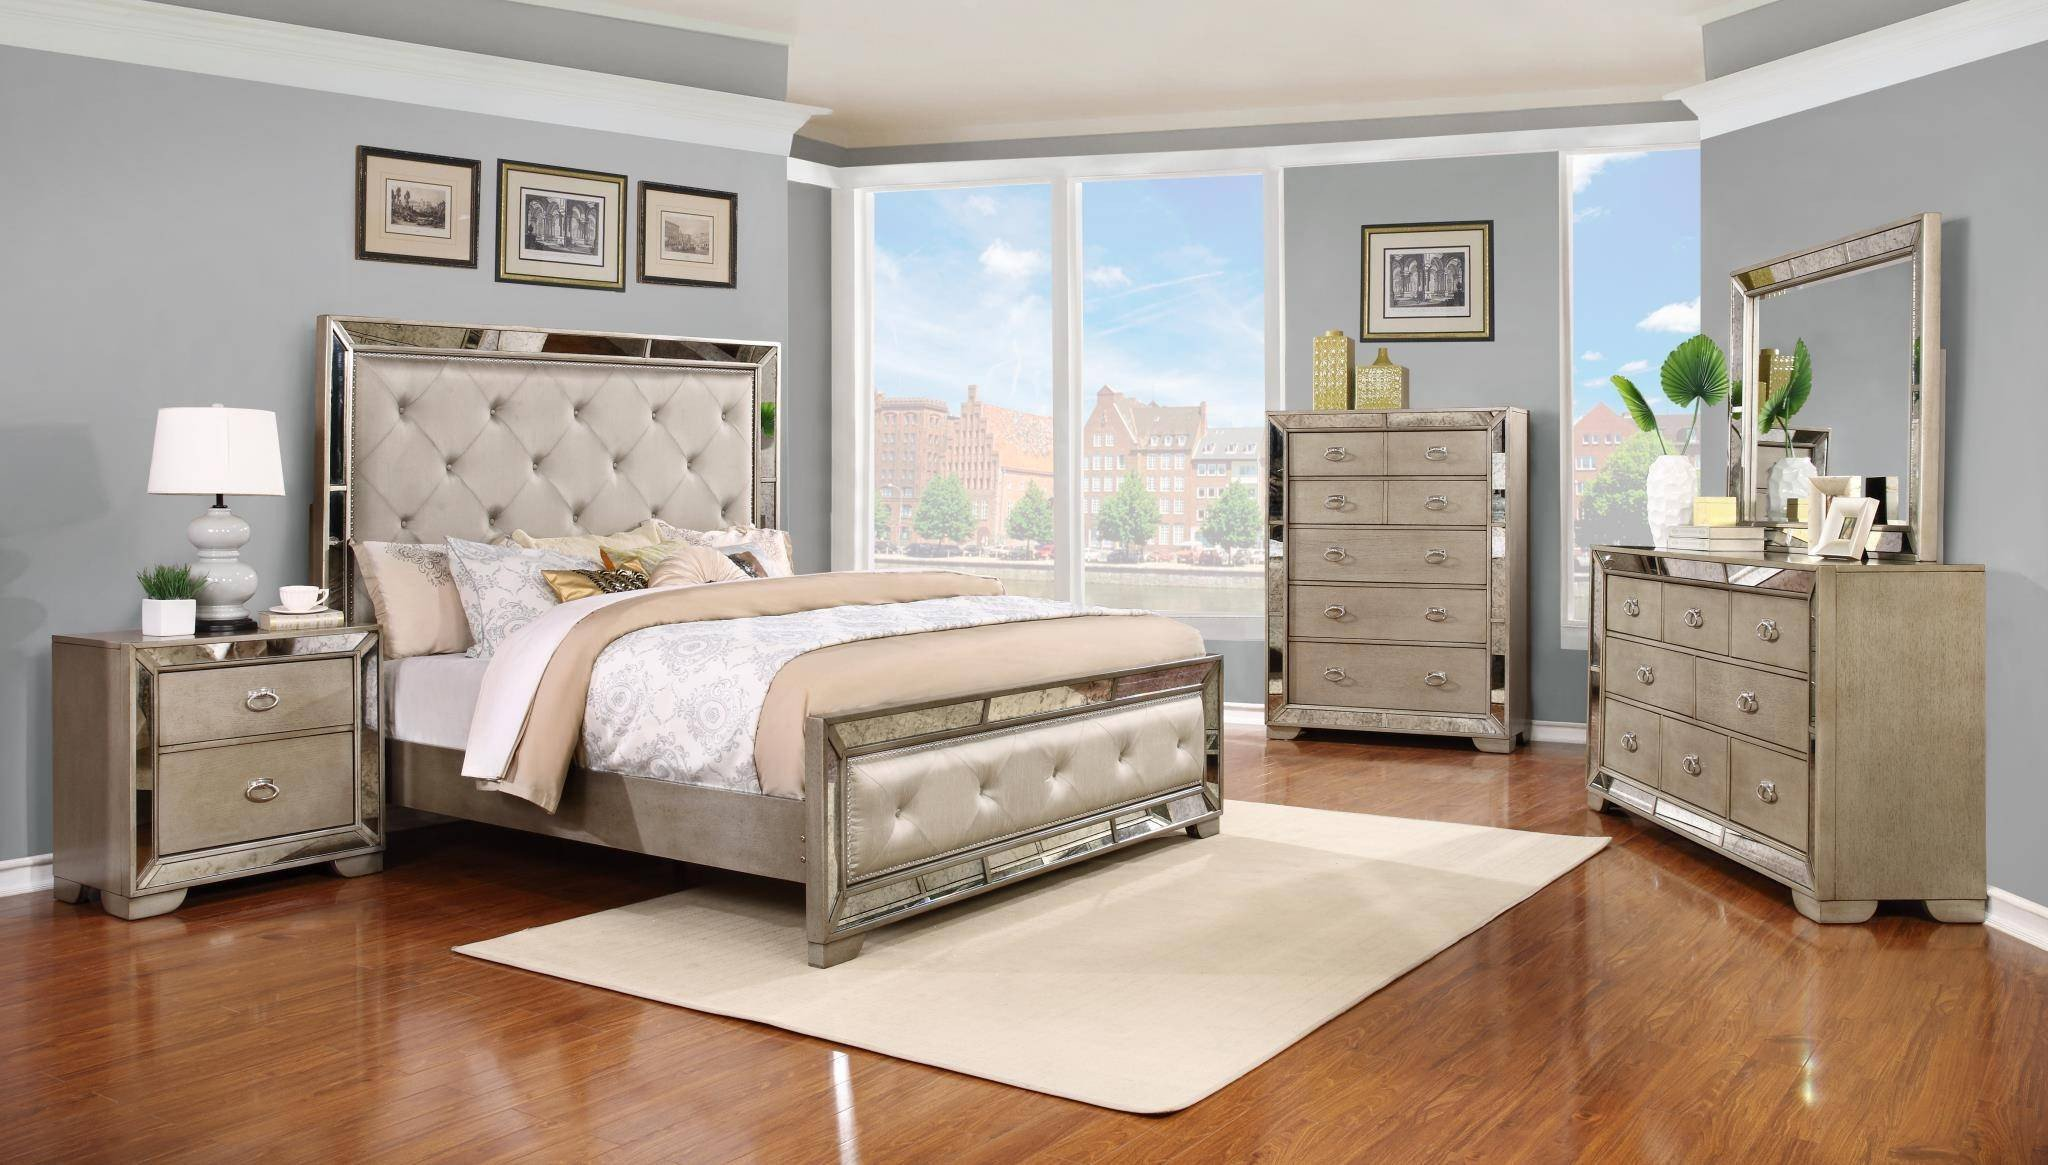 Cheap Bedroom Furniture Set Luxury soflex Lilyanna Diamond Tufted Headboard Queen Bedroom Set